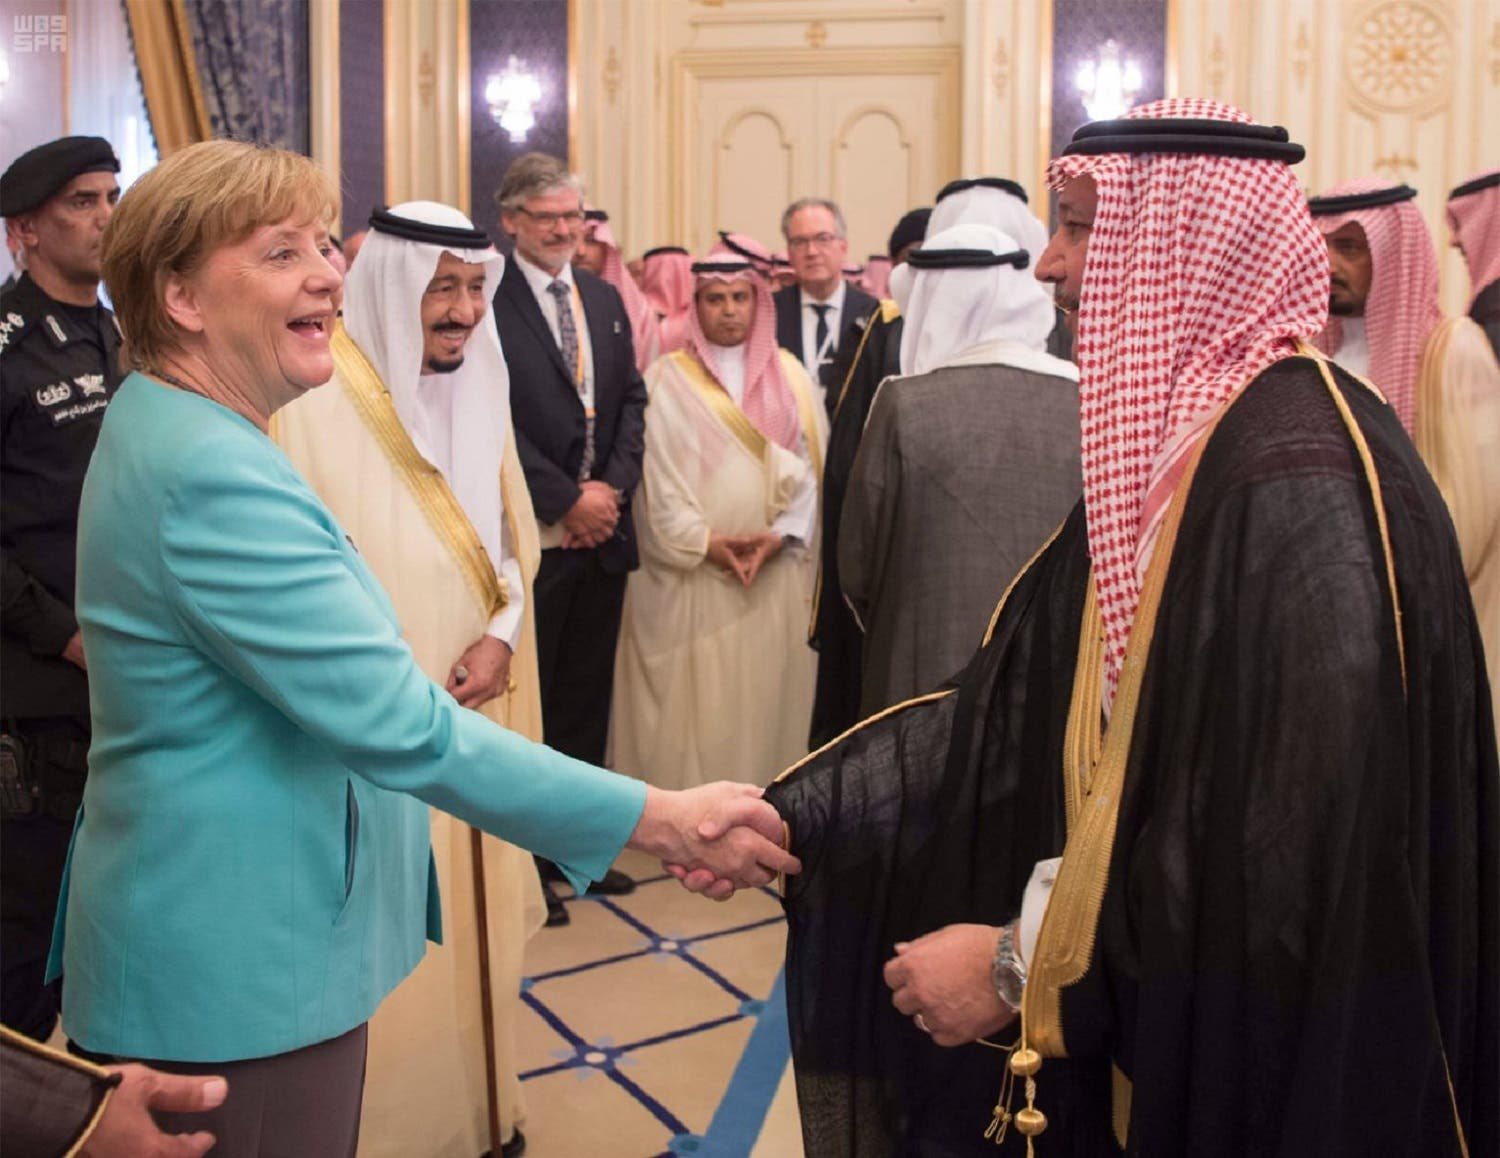 An official reception ceremony was held for Chancellor Merkel